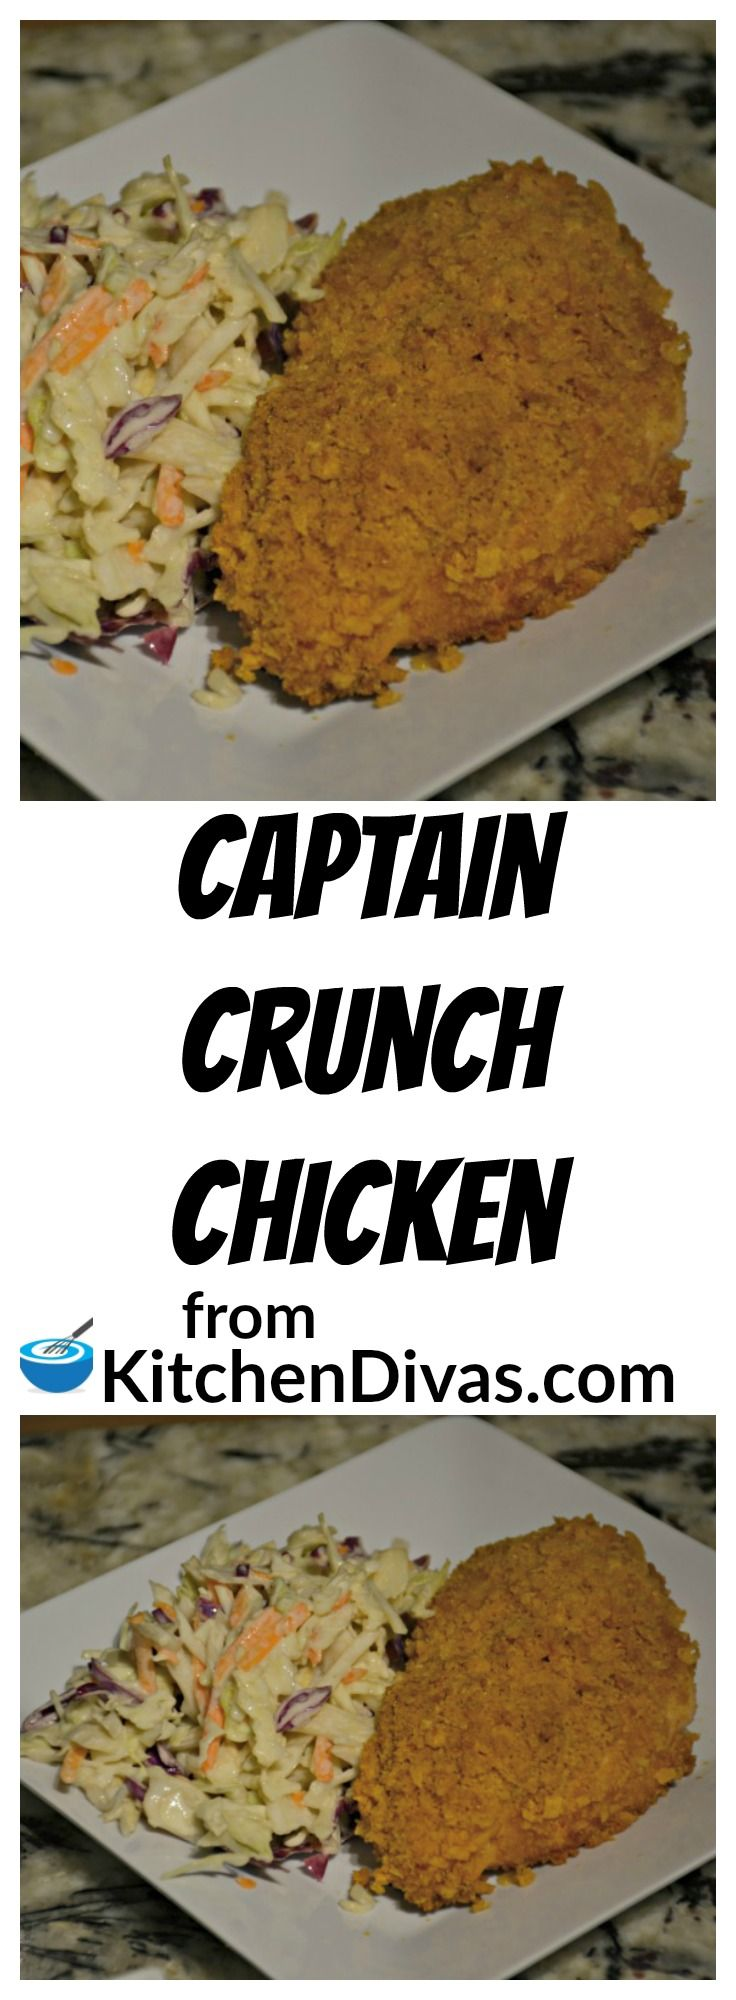 Ken loves Captain Crunch cereal and loves this chicken recipe. I think he could eat this coating all day long! Simple and tasty, this chicken dish never disappoints!